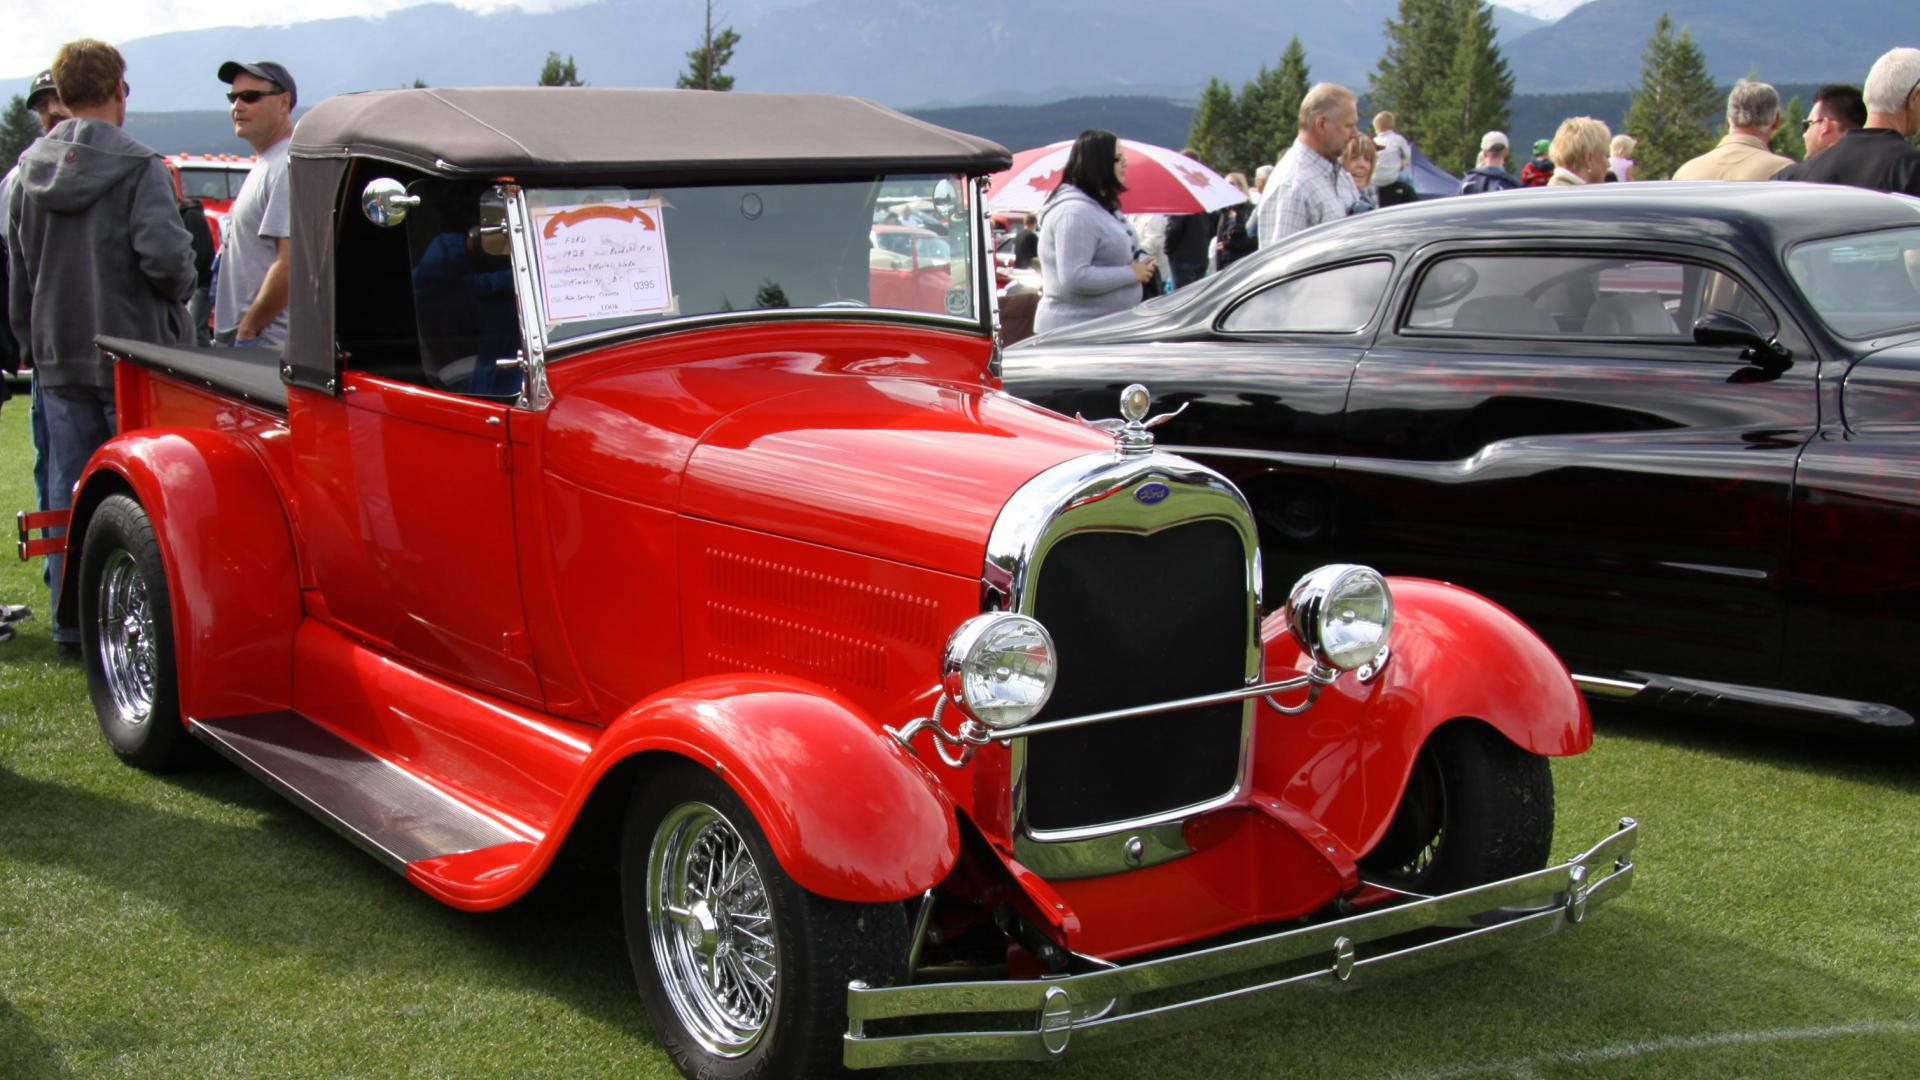 Ford 1928 in Radium Hot Springs car show 28     42080 HD Wallpaper